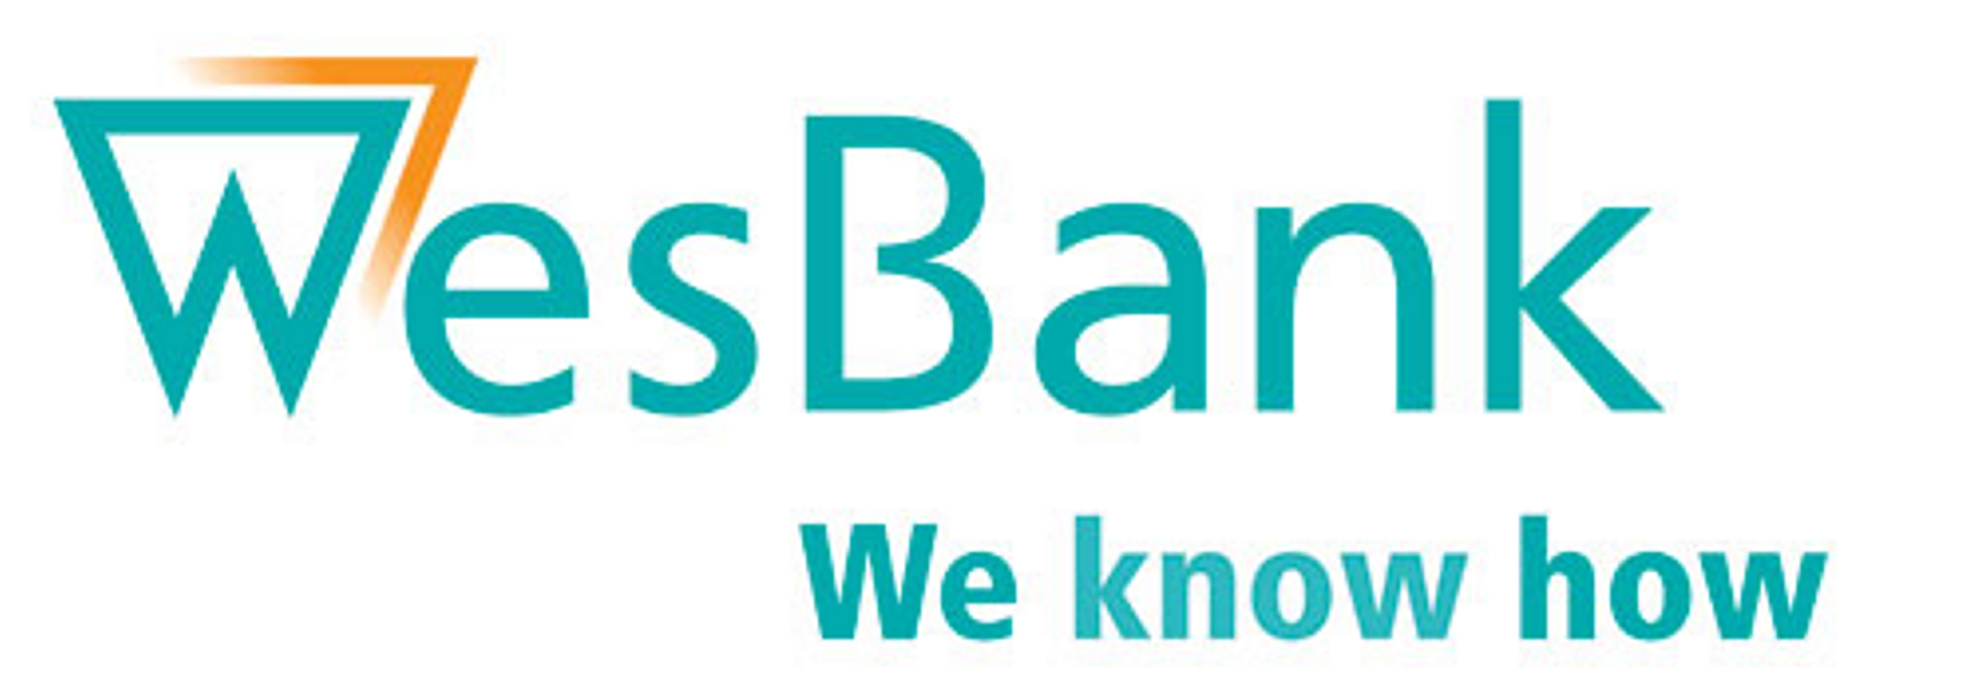 WesBank Invites Private Buyers to Experience Auctions # Wasbak Action_011608